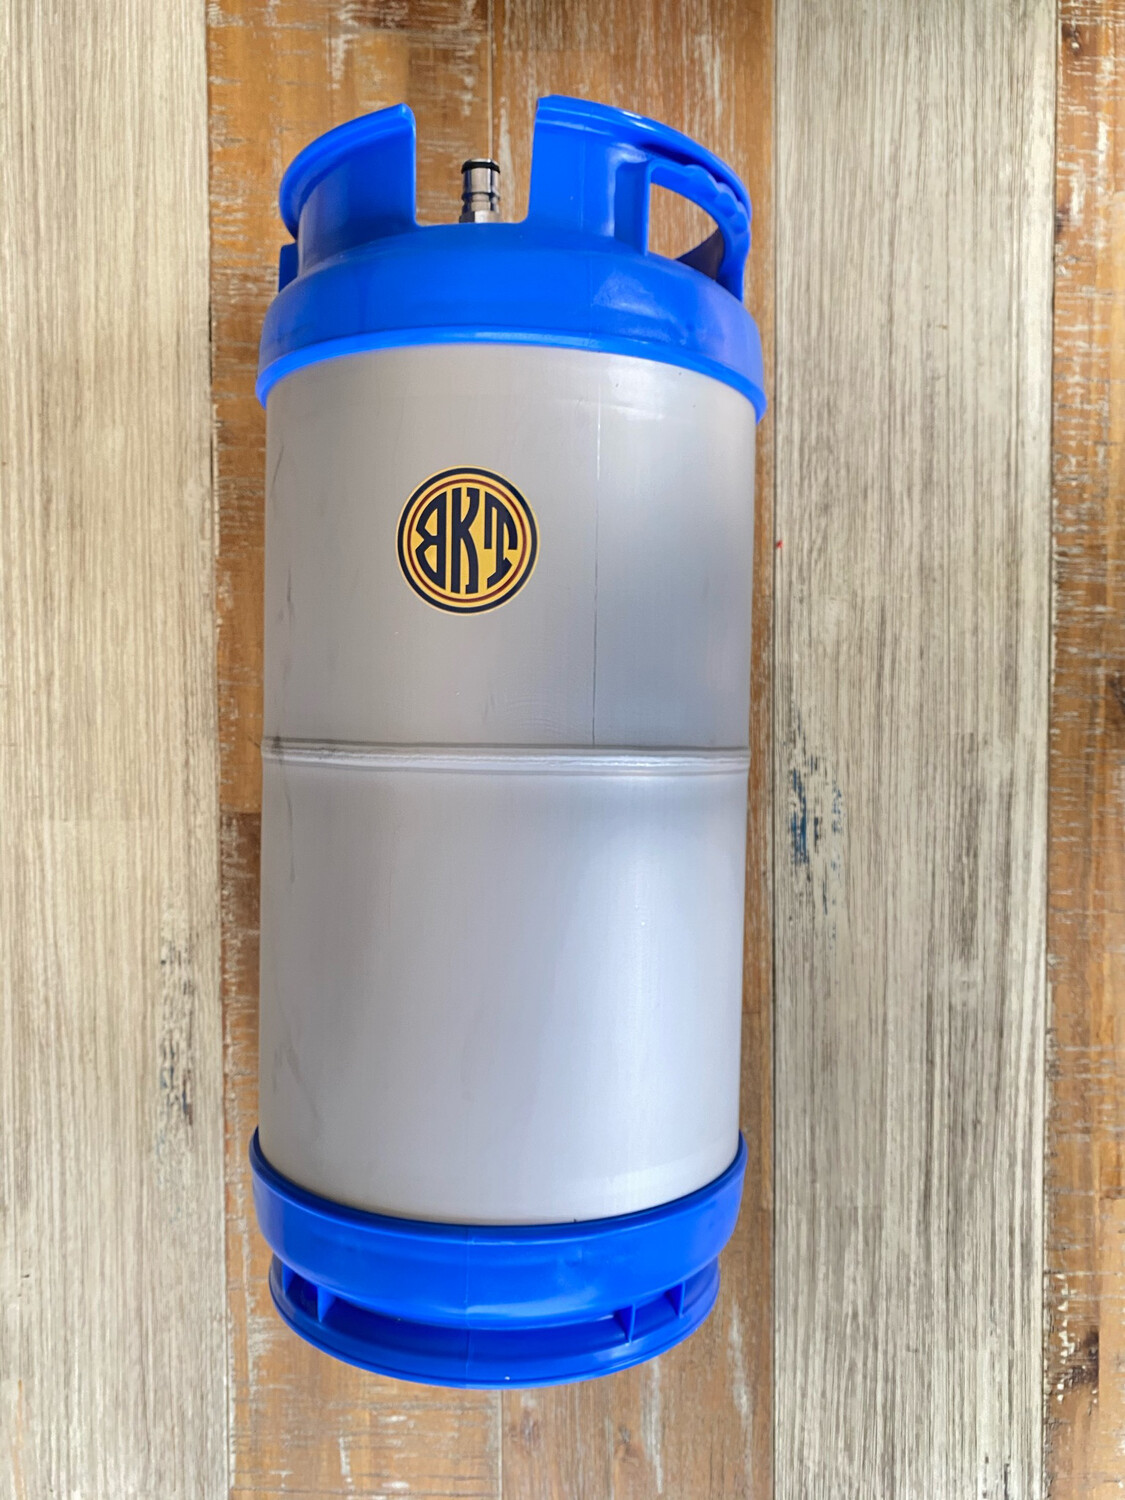 2 x 18L or 19L Reconditioned Used/2nd Hand Ball Lock Kegs